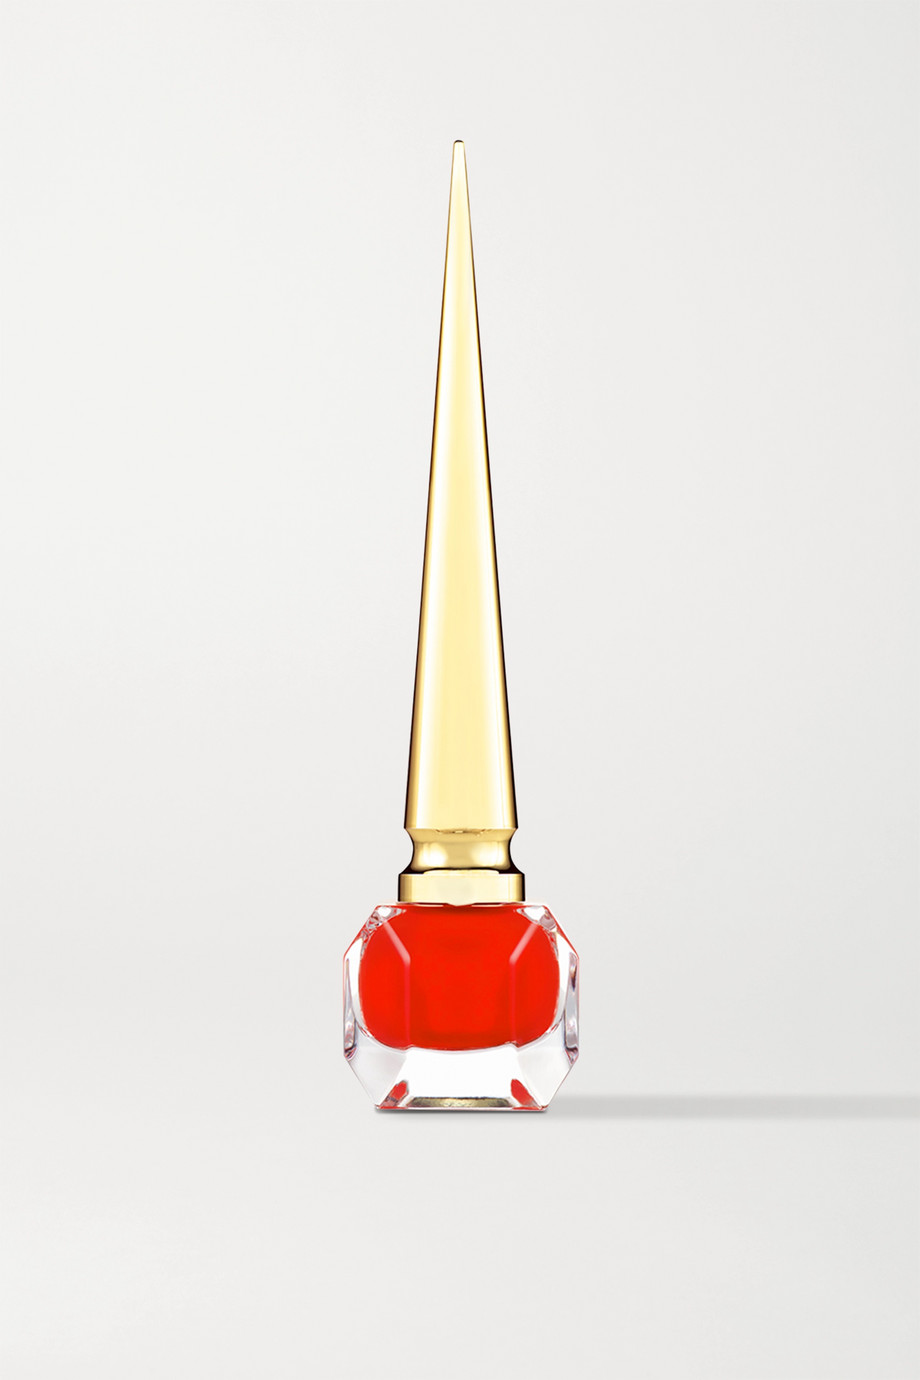 Christian Louboutin Beauty Nail Color - Coccinella